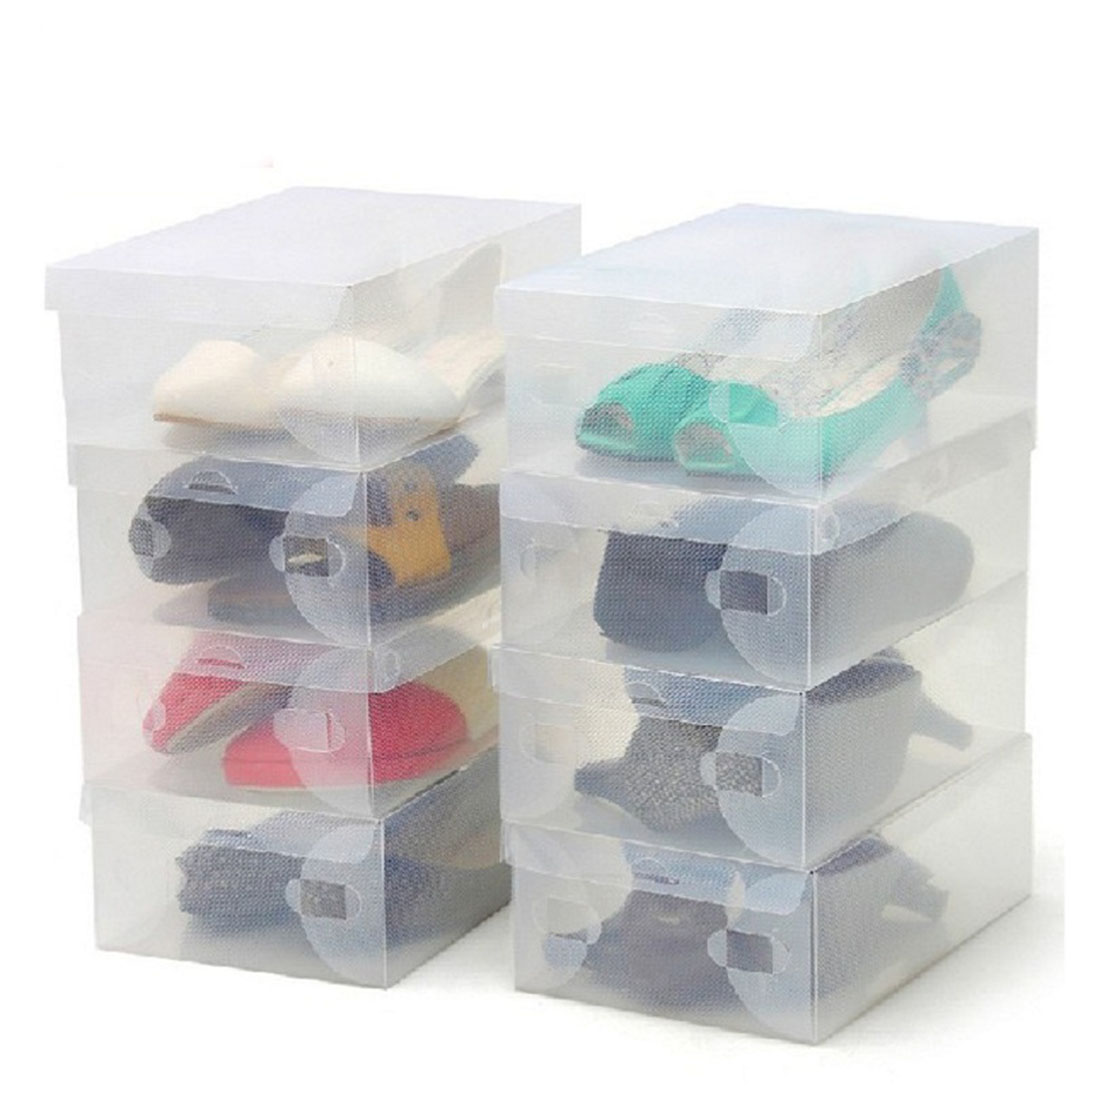 Collapsible Fol Clear Corrugated Plastic Shoe Boxes Shoe Storage Box 10 Pack